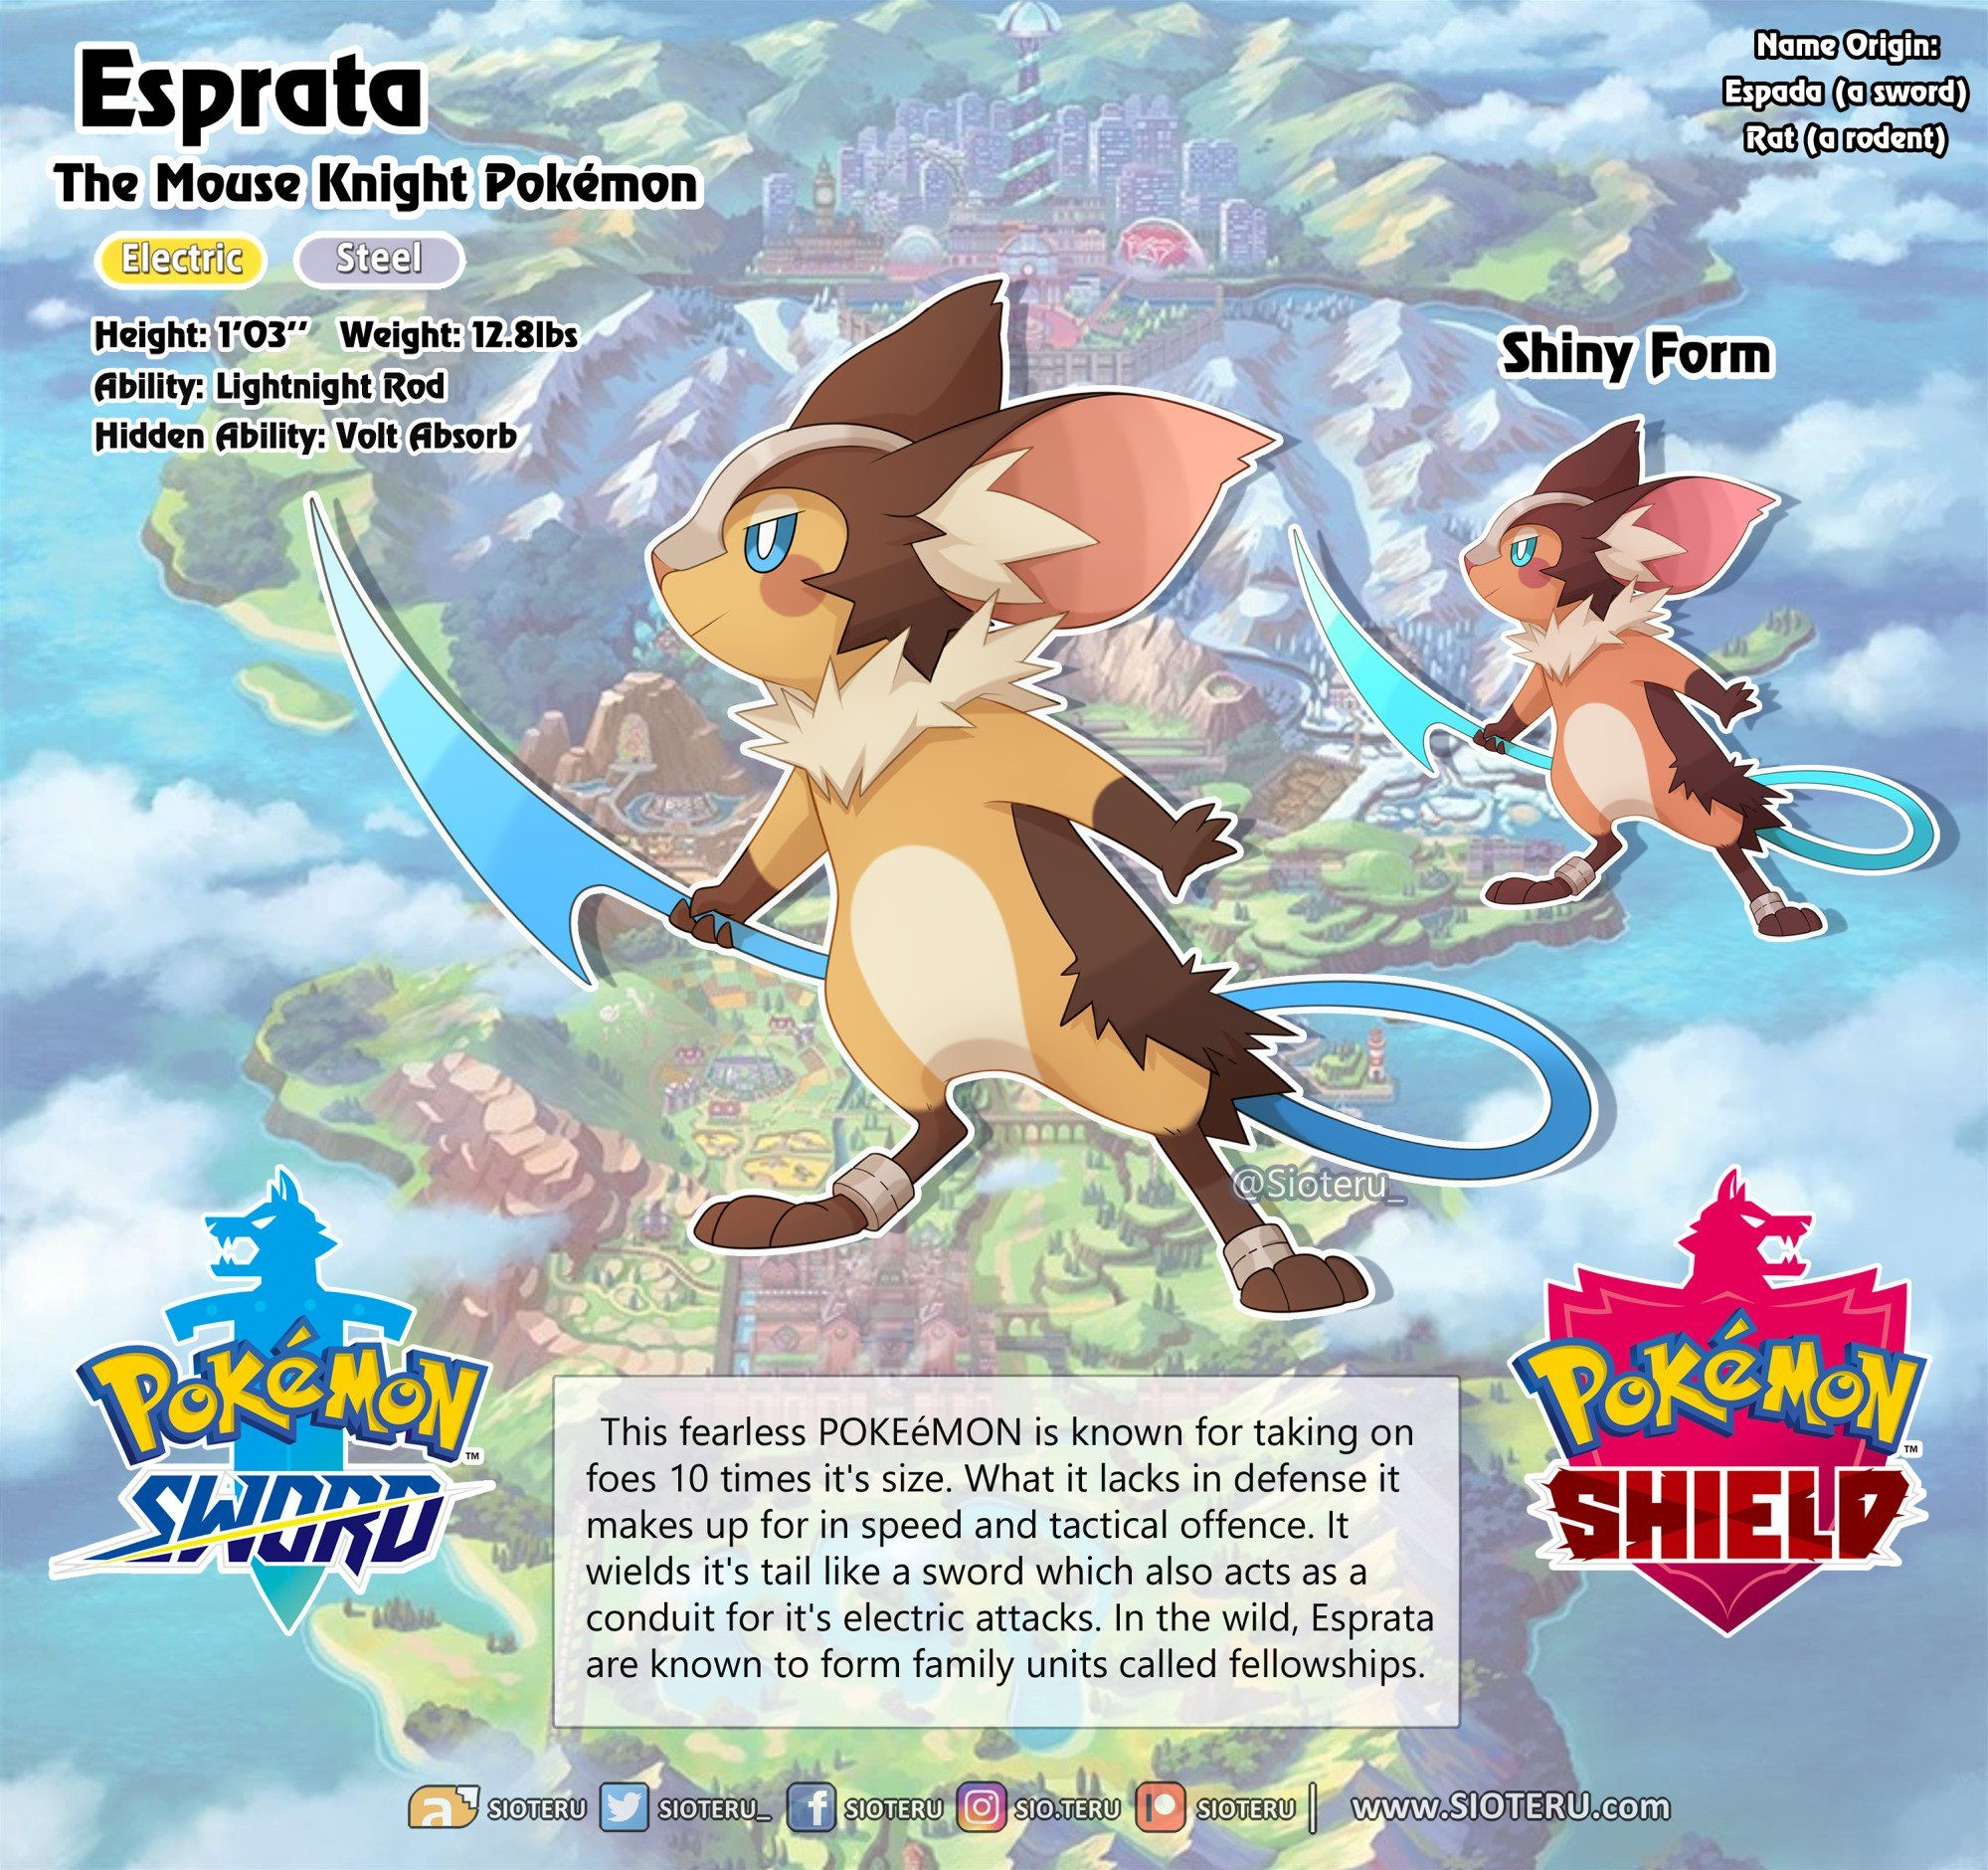 Visit Https Www Reddit Com R Pokemonswordandshield Pokemonsword Pokemonshield Pokemonswordshield Grookey Scor Pokemon Pokemon Breeds Pokemon Pictures Starting june 2, just transferring one pokémon with the system awards you with grookey, scorbunny and sobble all with their hidden. pokemon pokemon breeds pokemon pictures